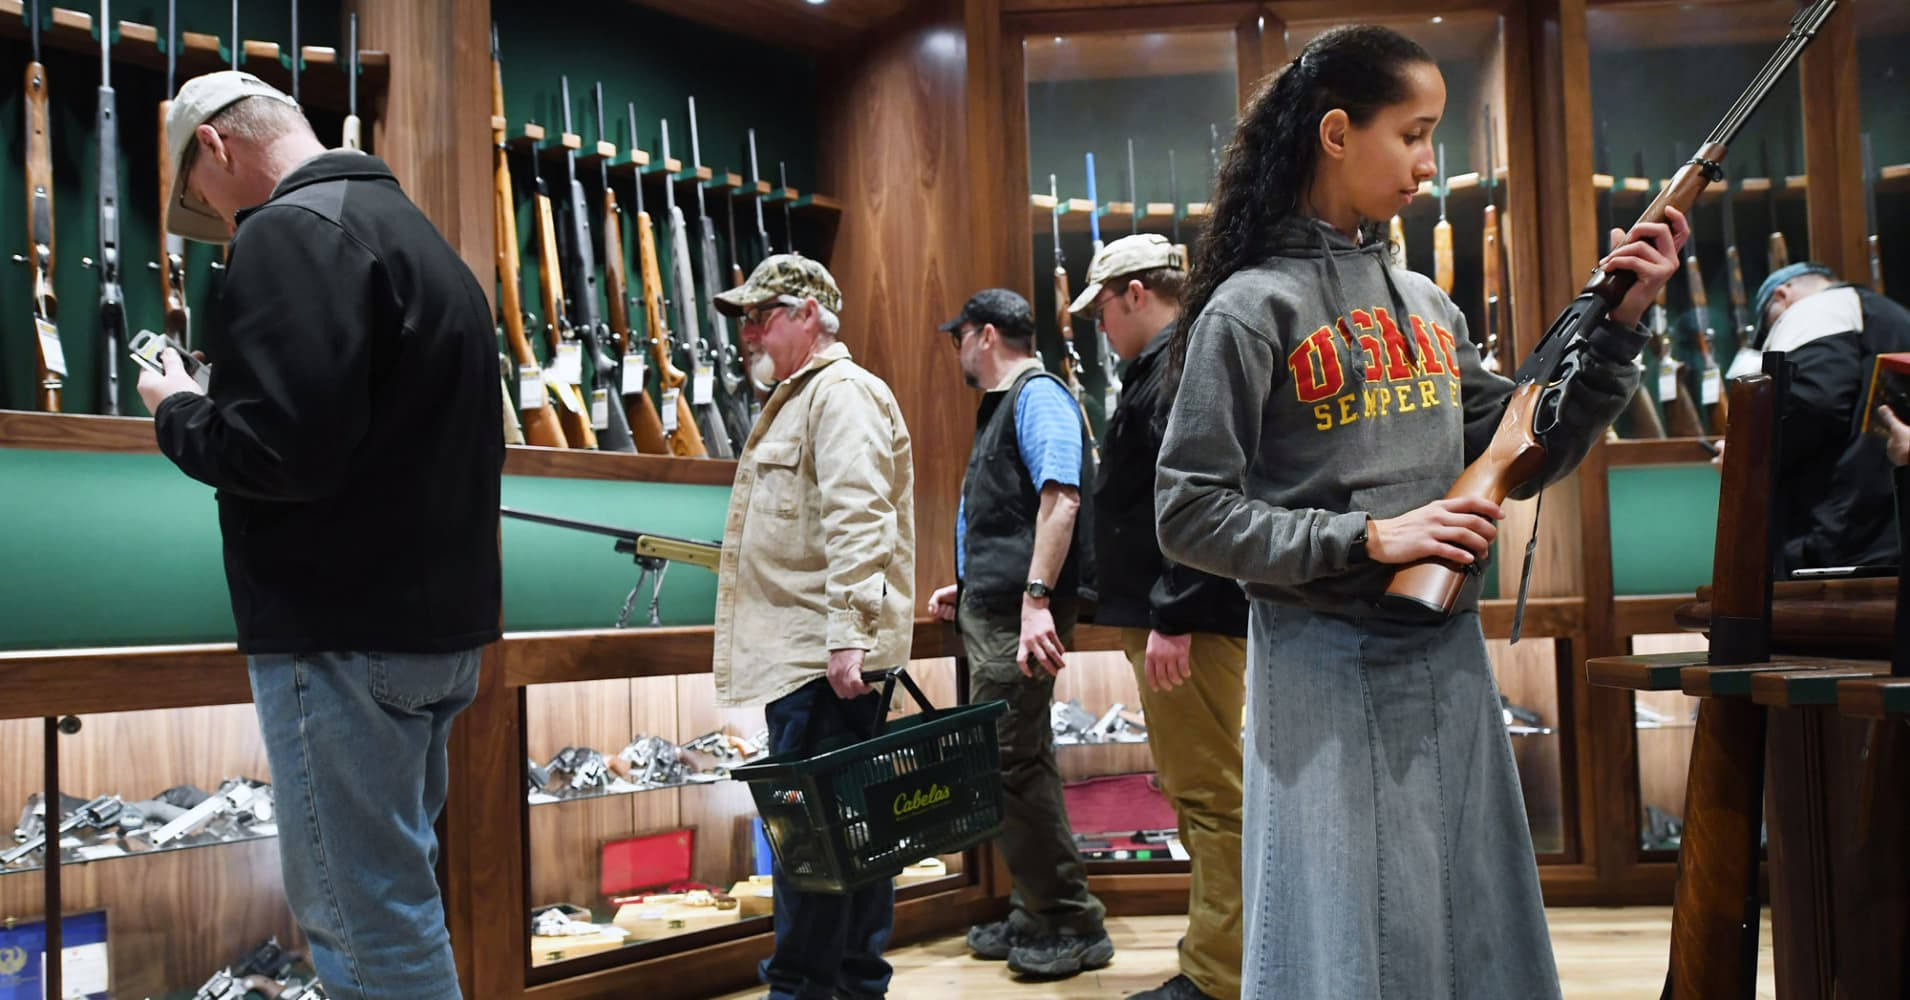 Goldman Sachs' funding in a gun retailer places it in an ungainly place